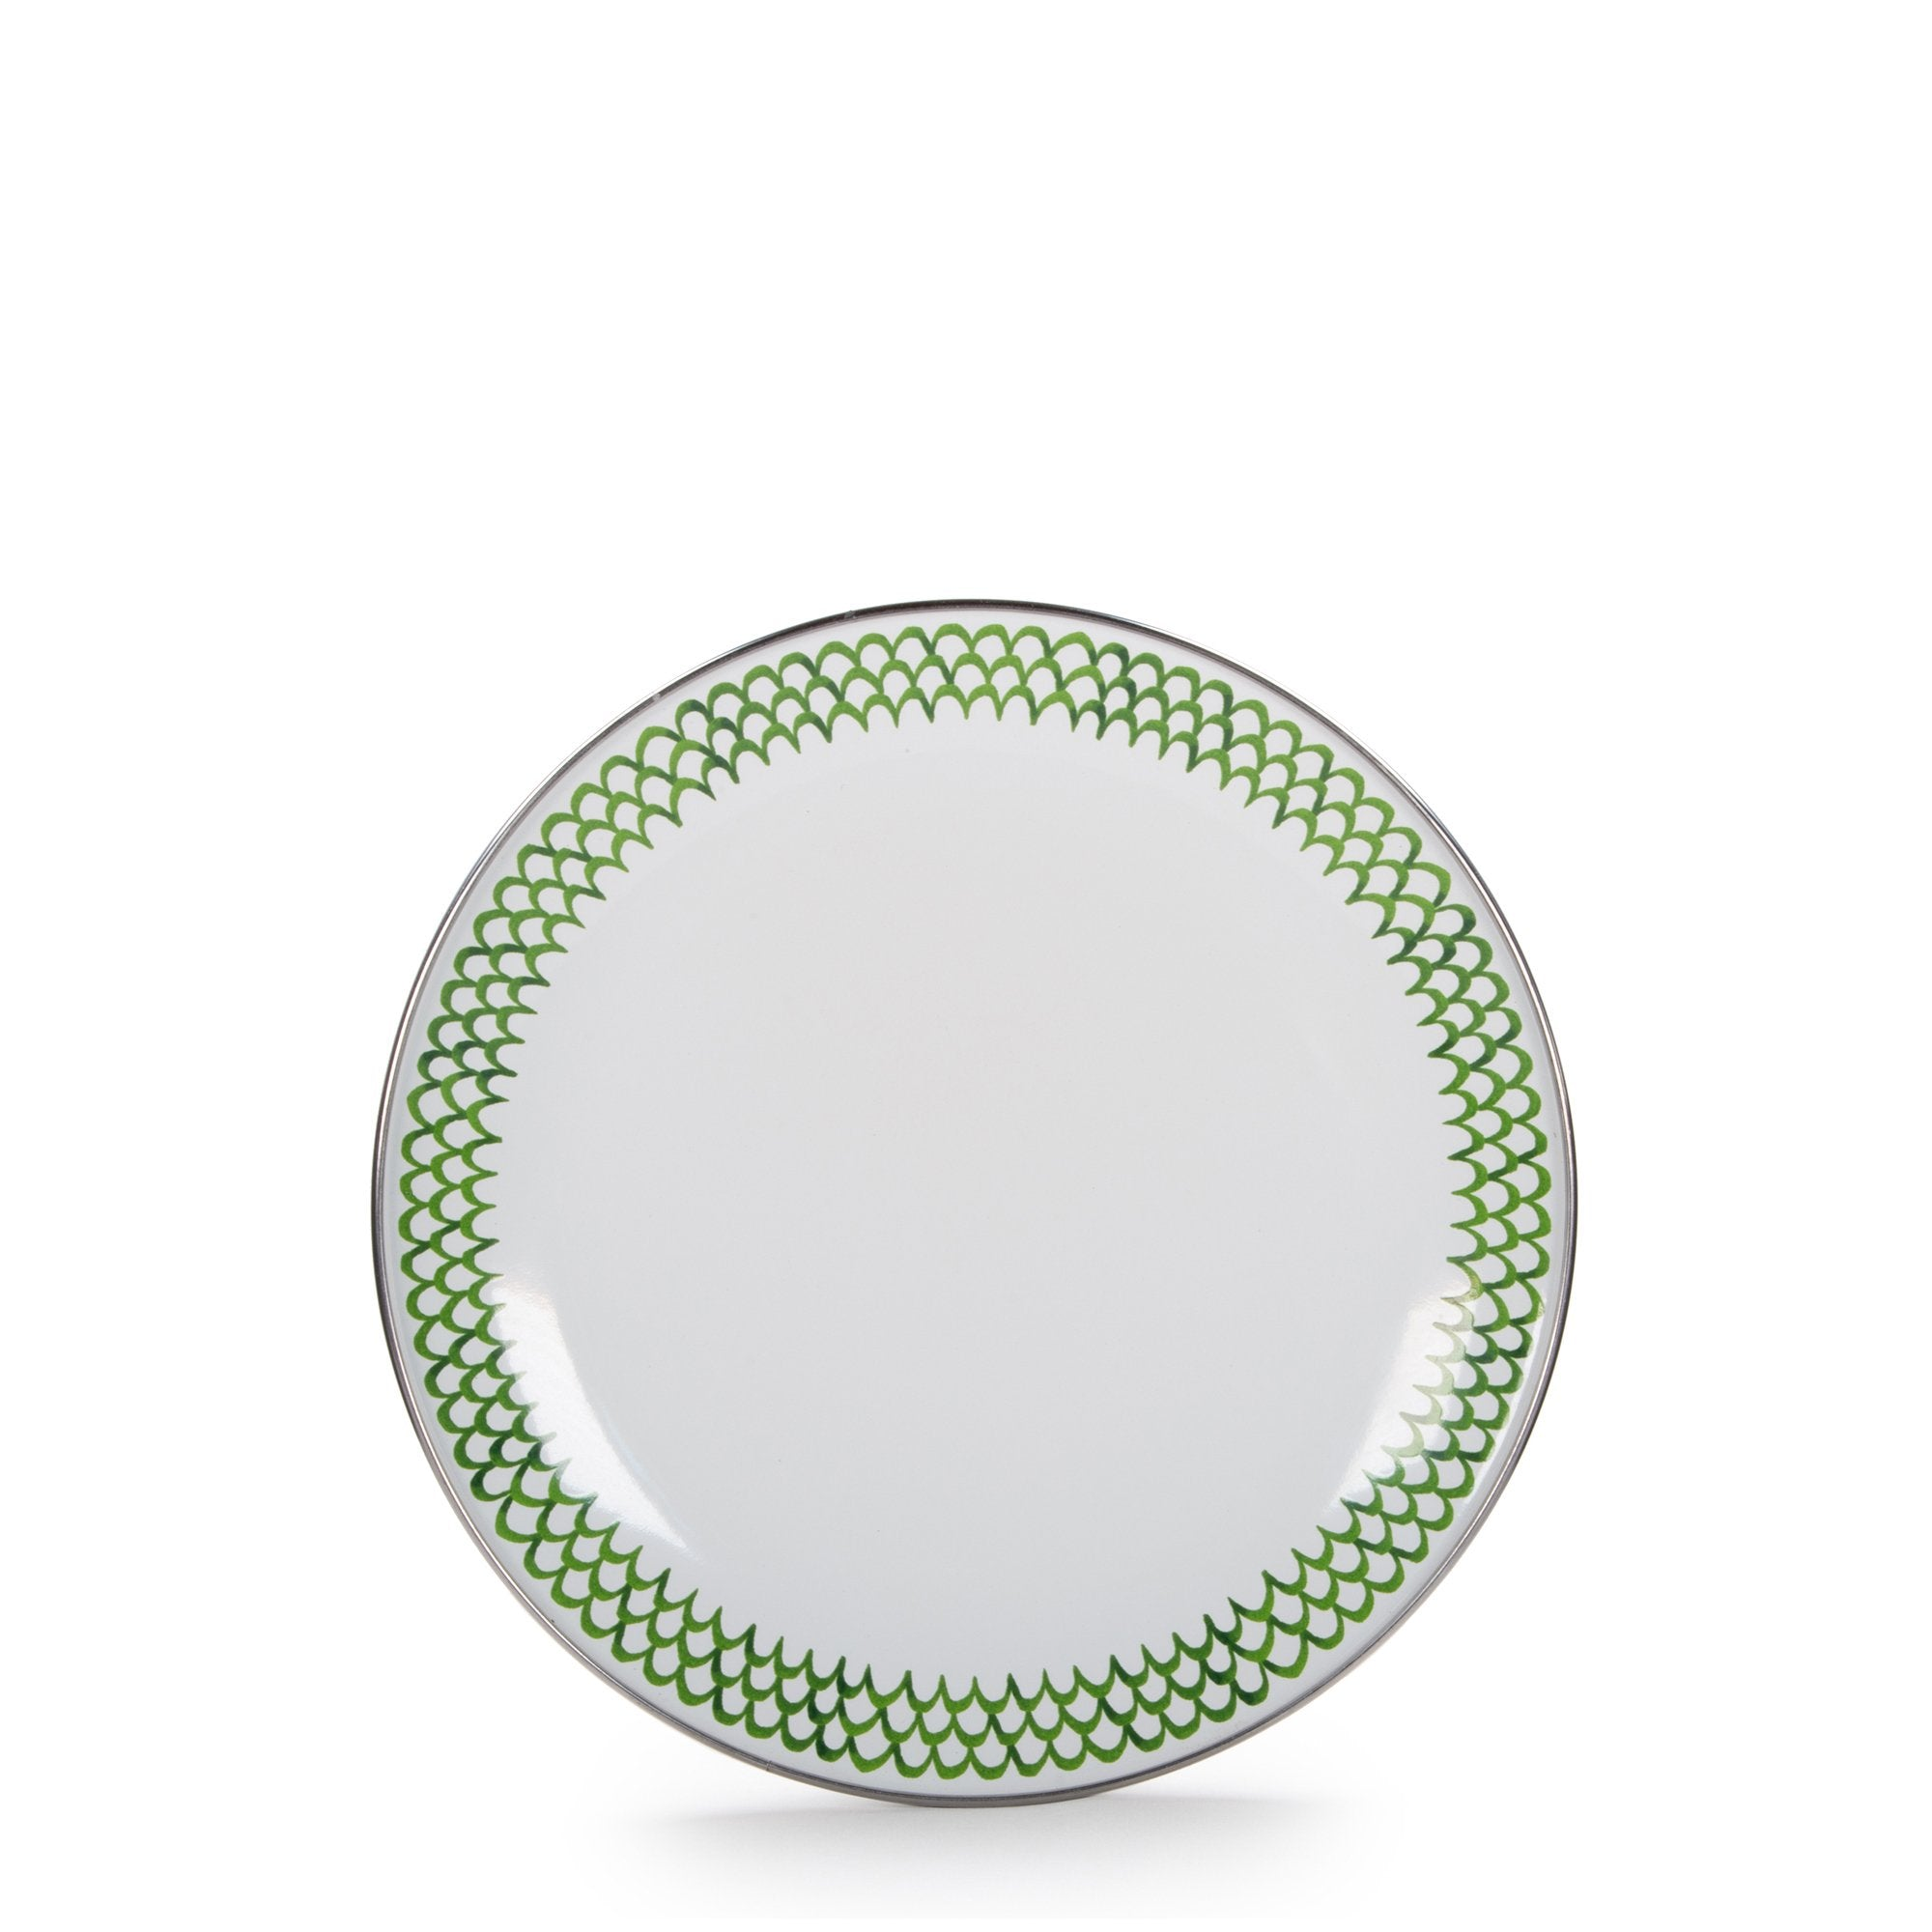 GS69 - Green Scallop Pattern - Sandwich Plate